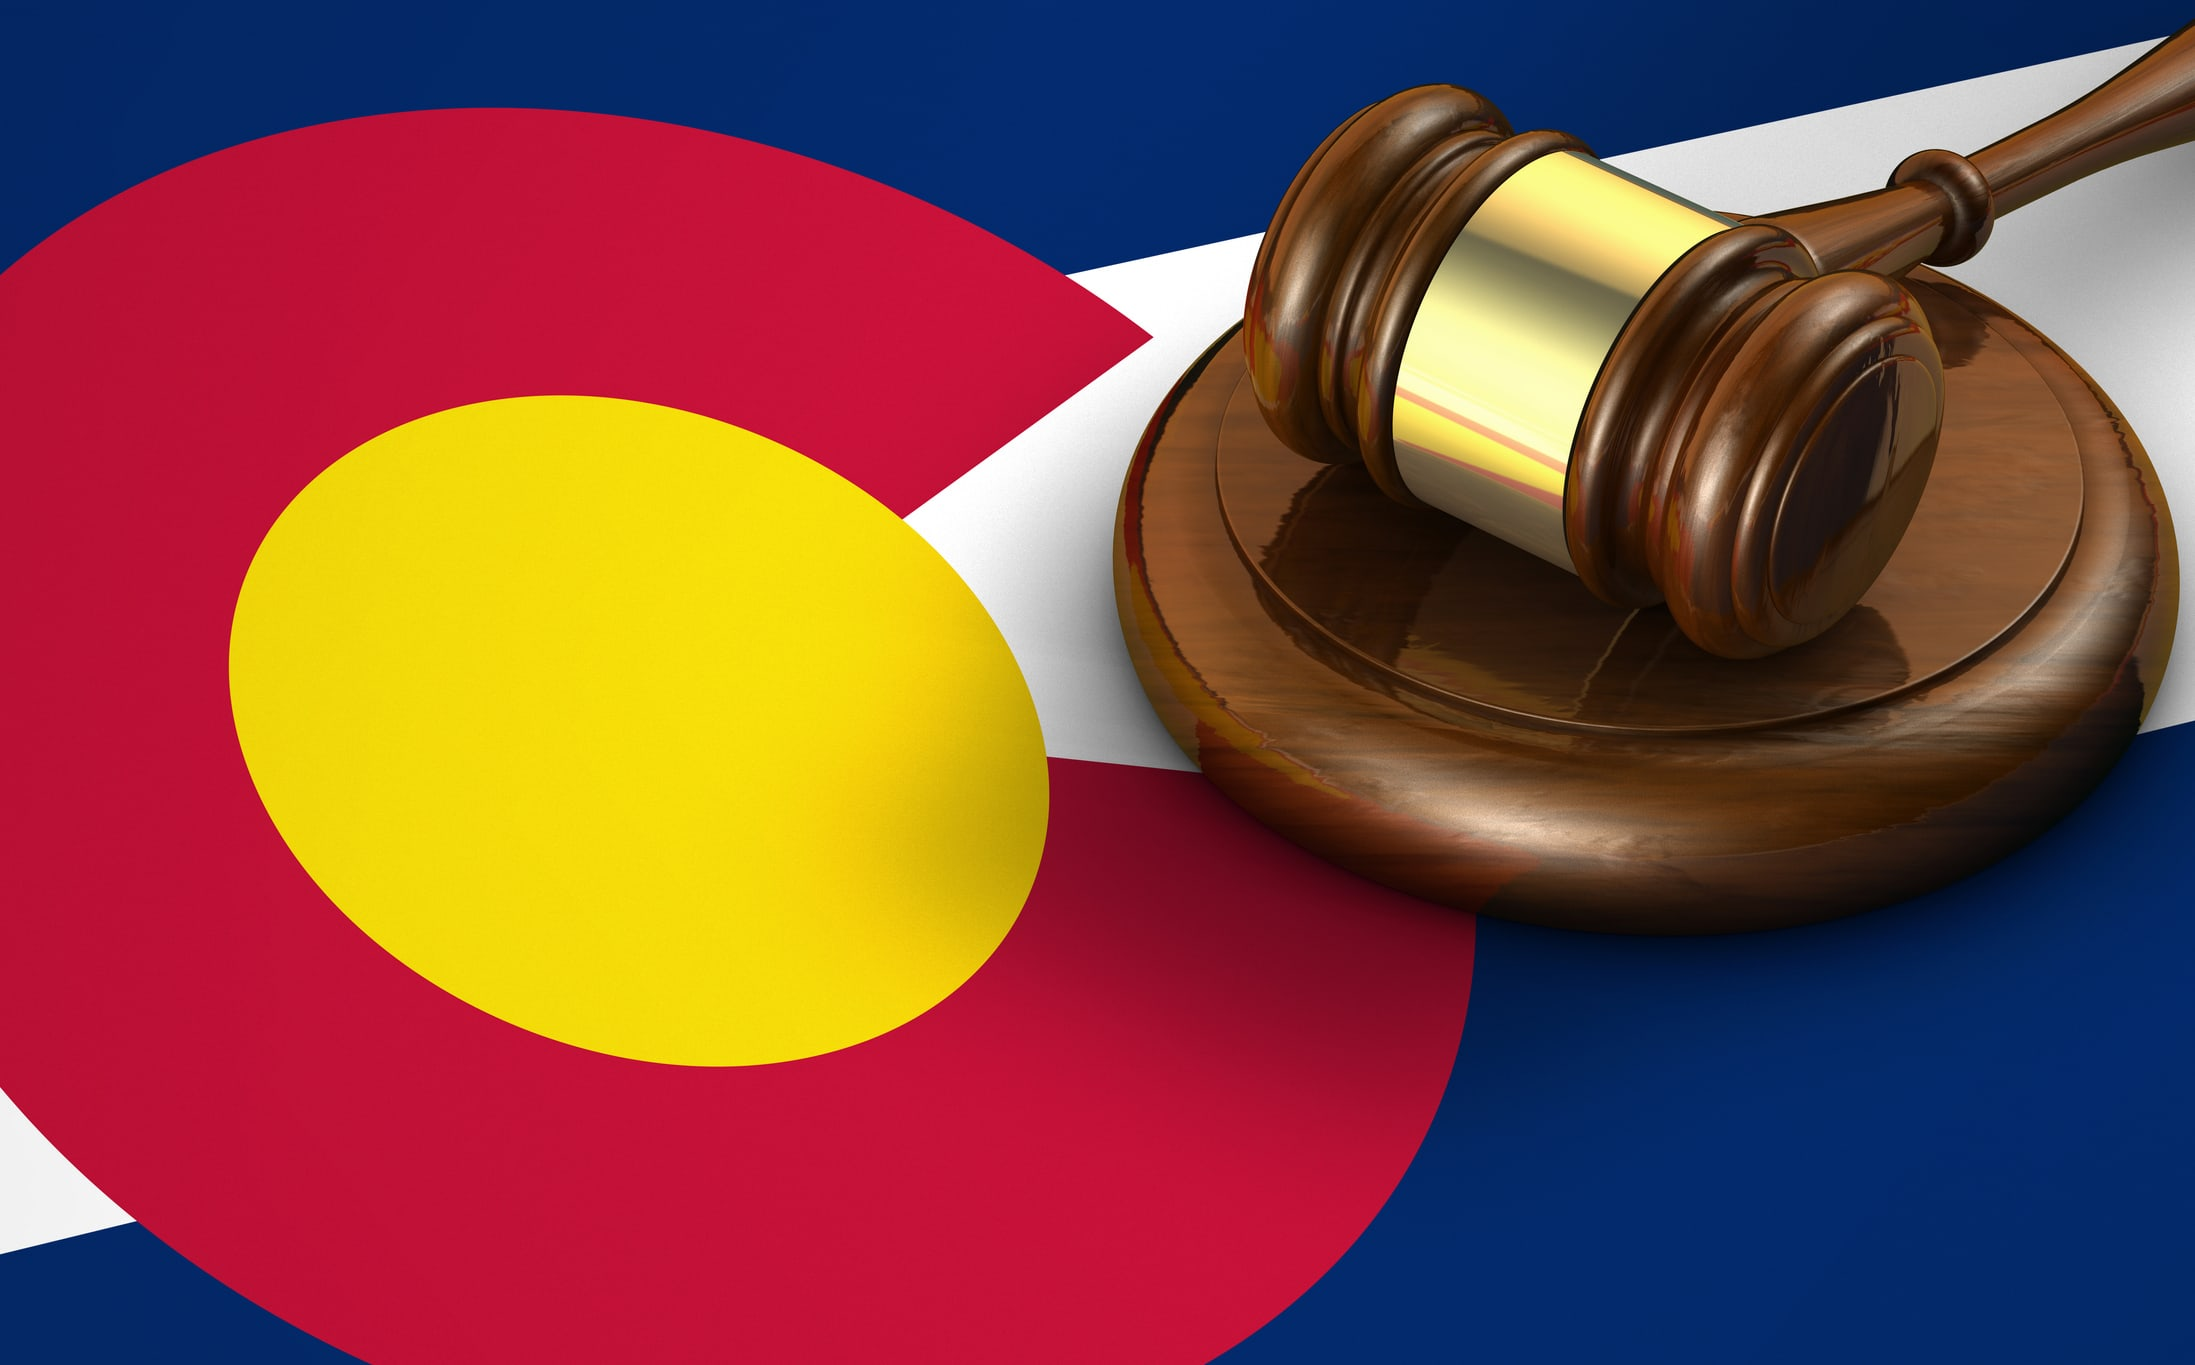 Colorado US state law, code, legal system and justice concept with a 3d render of a gavel on the Coloradoan flag on background.